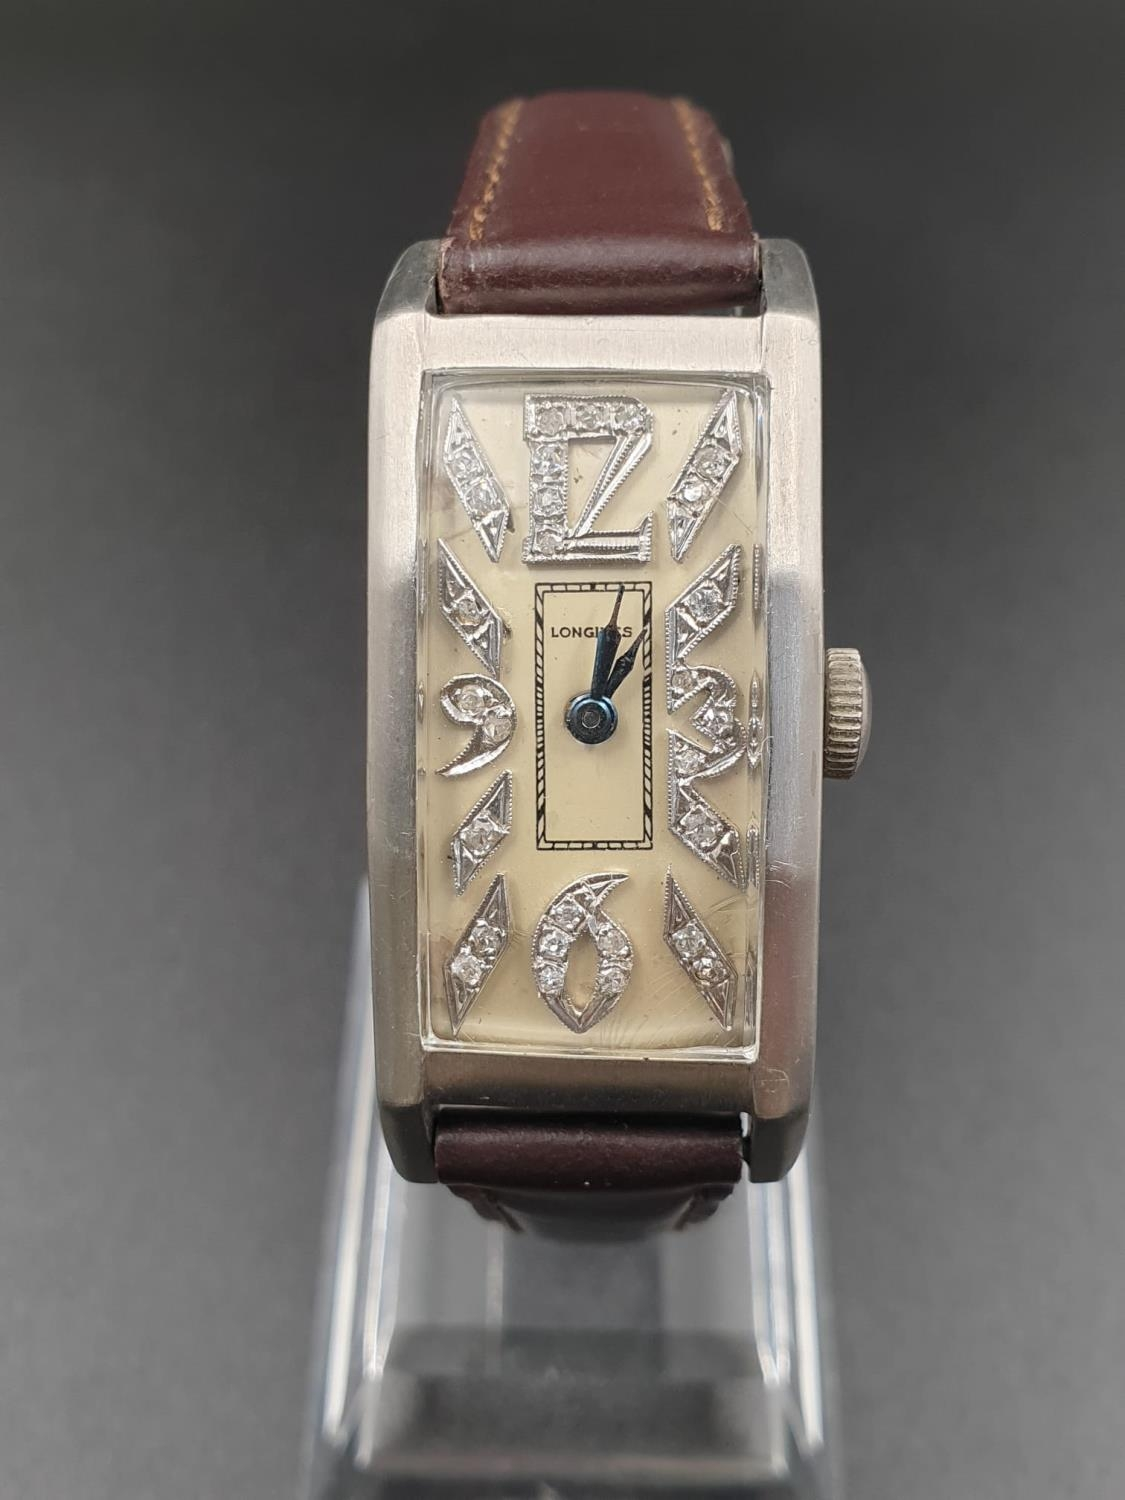 A PLATINUM LONGINES WRIST WATCH WITH DIAMOND NUMBERS. 20mm manual movement.